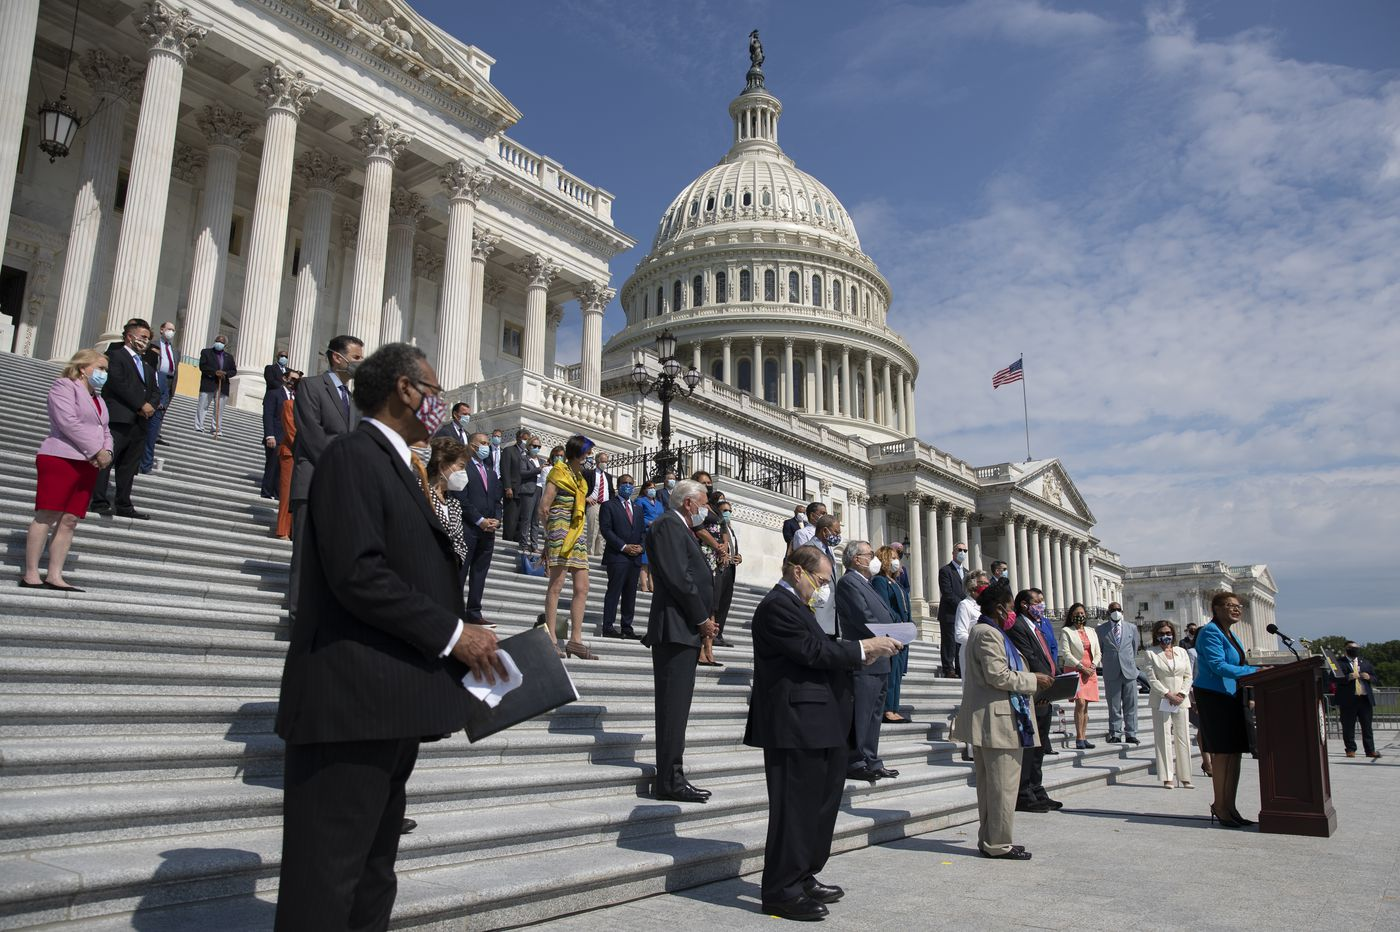 National policing reform stalls in Congress despite public support during national trauma